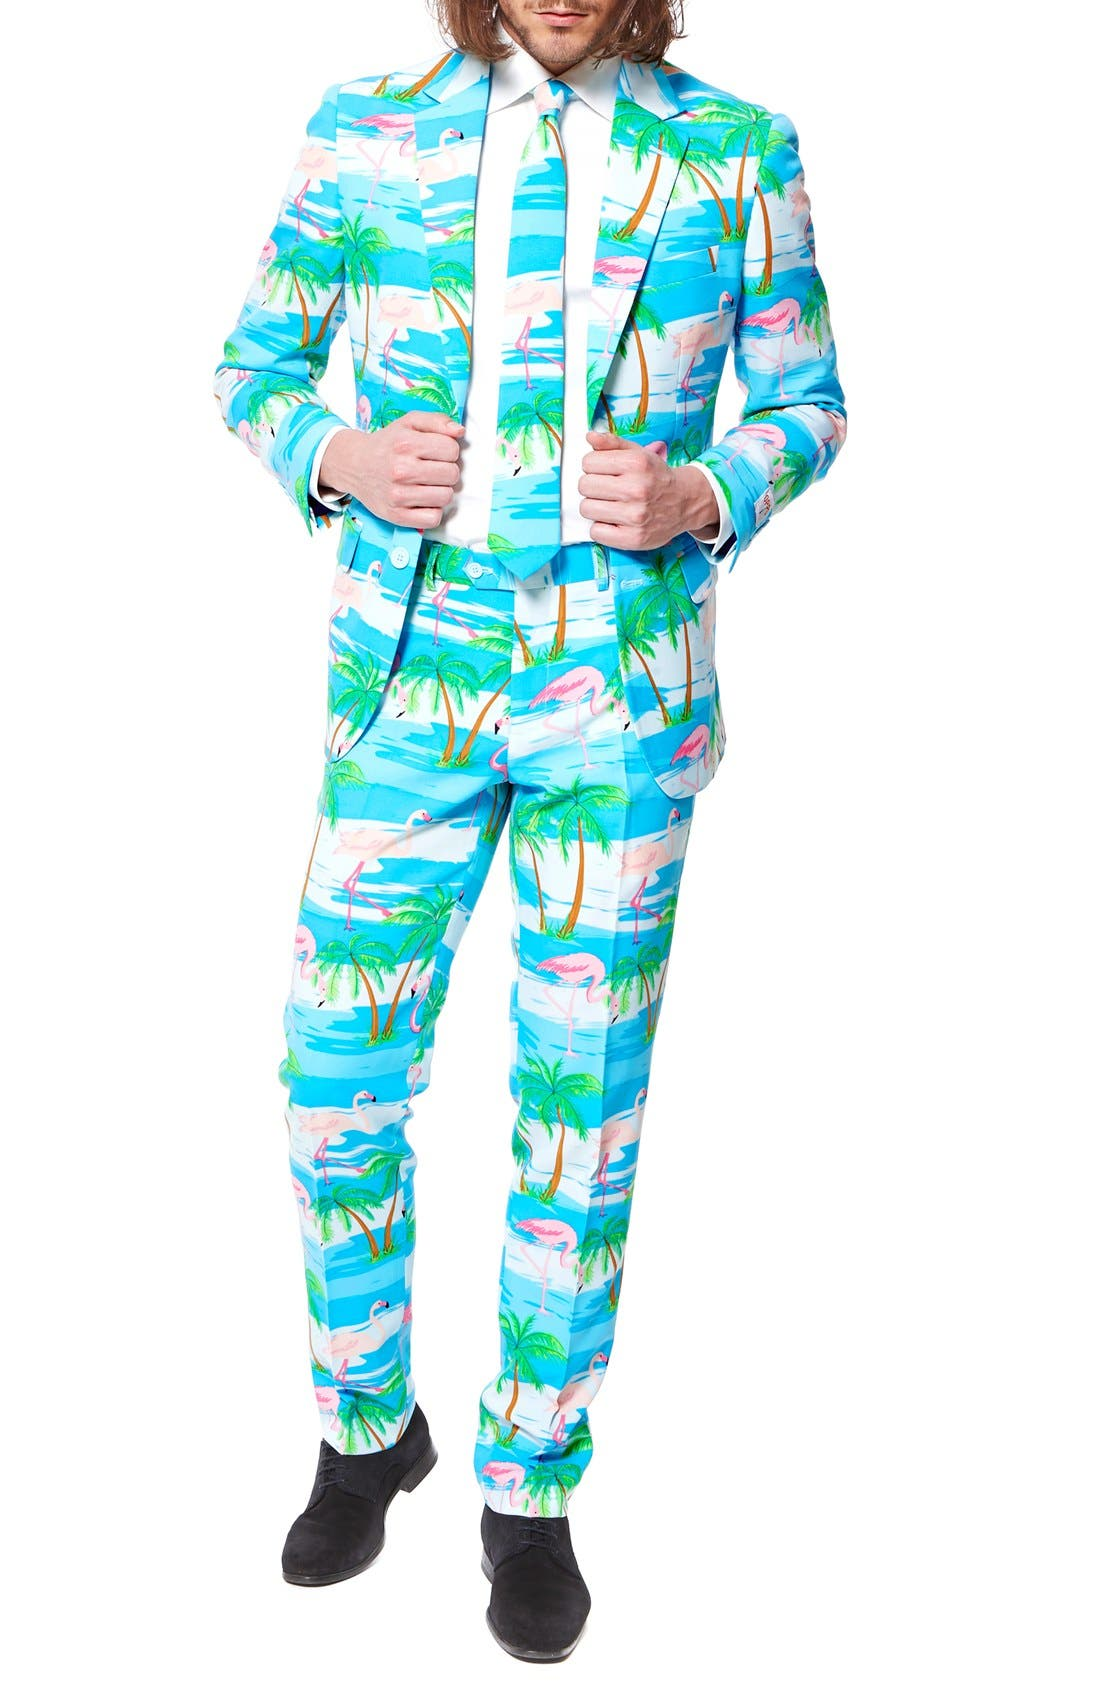 Alternate Image 1 Selected - OppoSuits 'Flaminguy' Trim Fit Two-Piece Suit with Tie